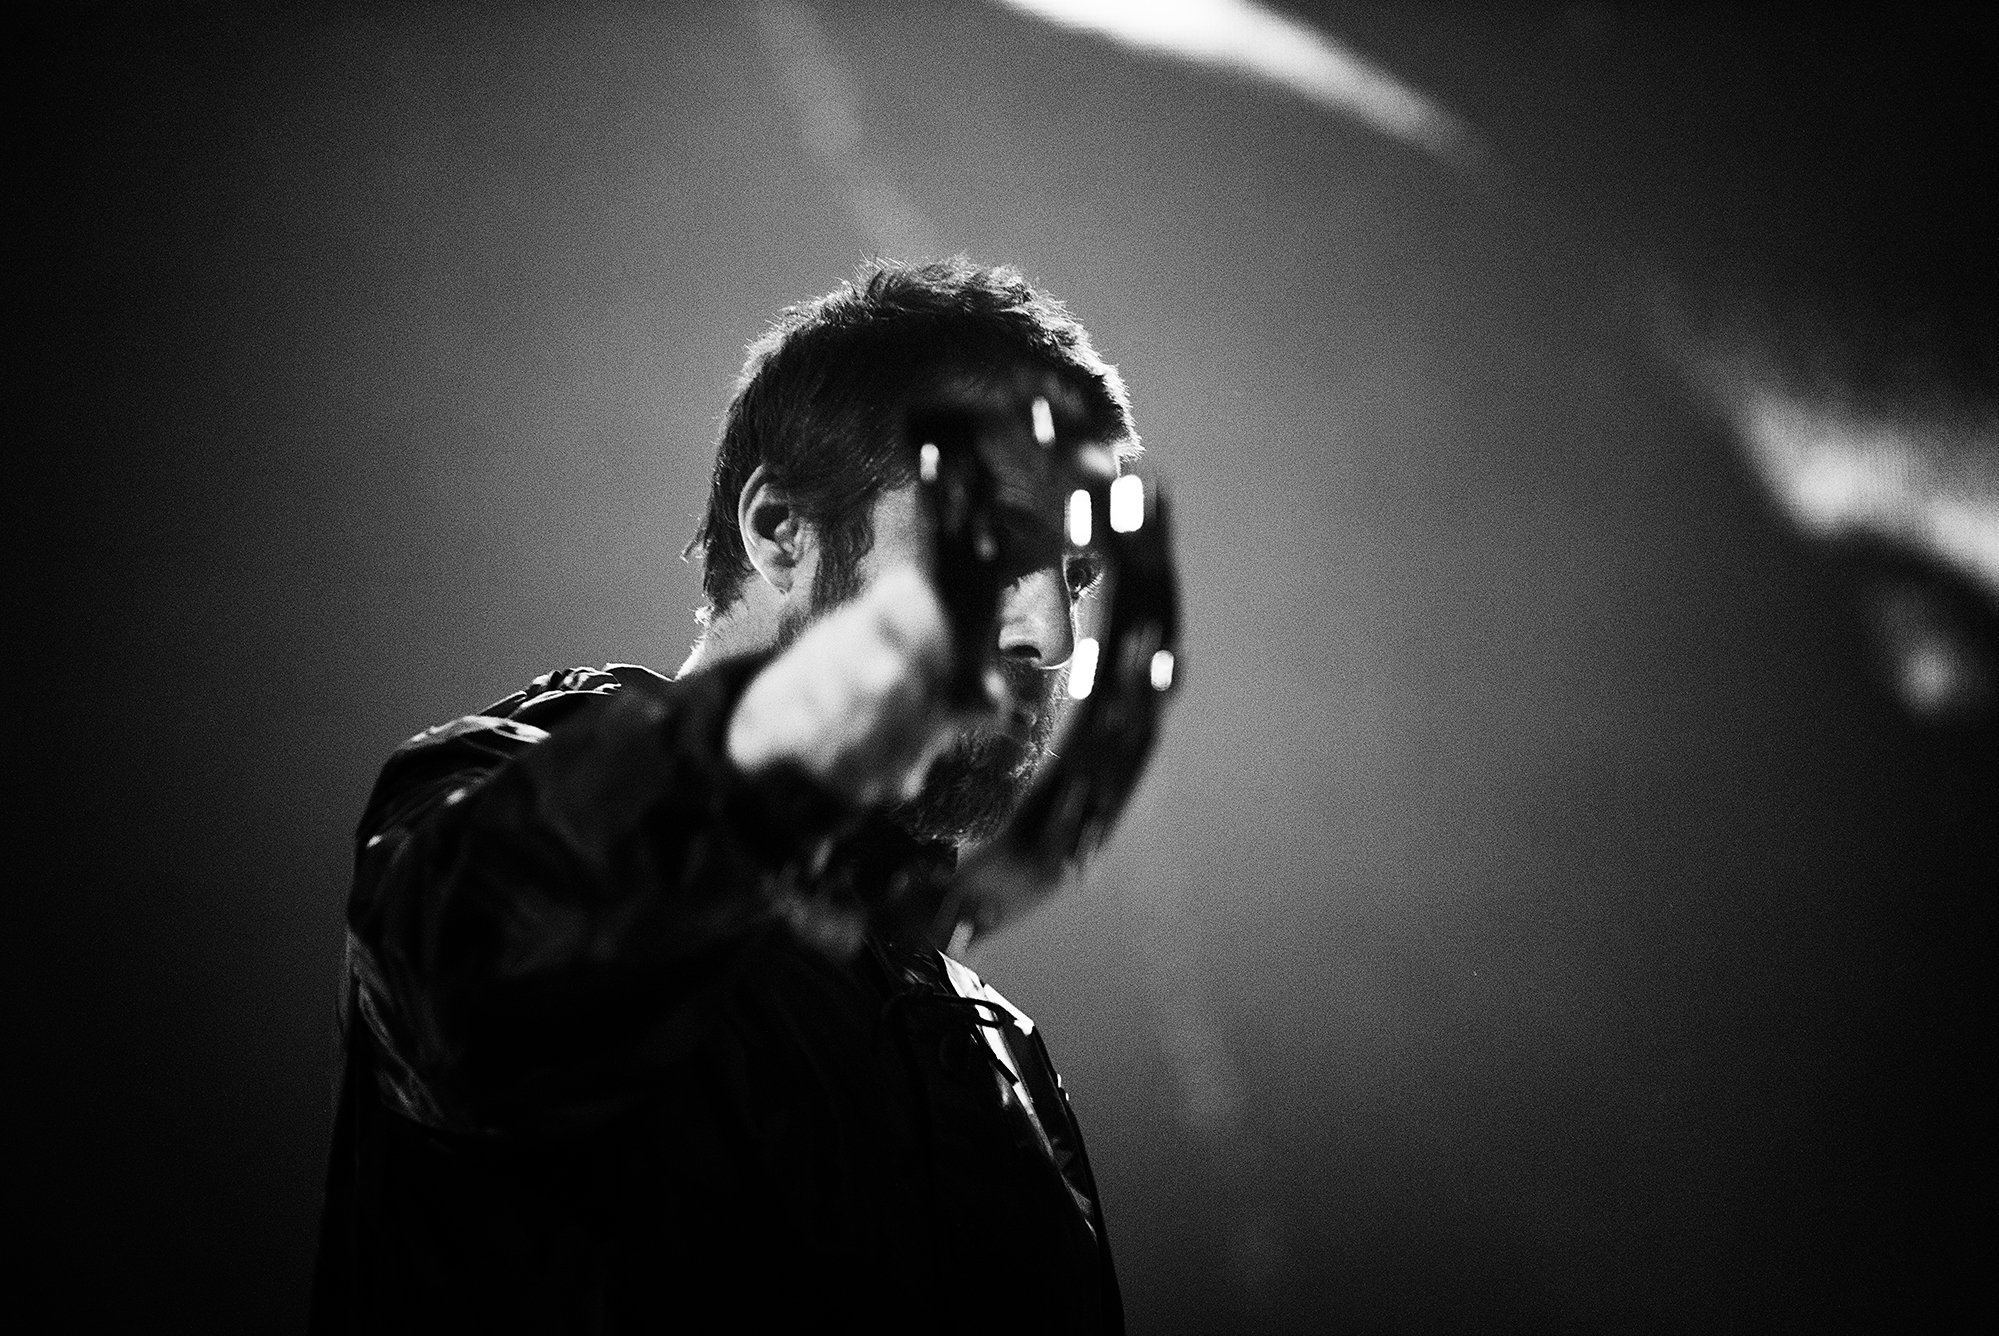 Liam_Gallagher-Carolina Mendozza-513